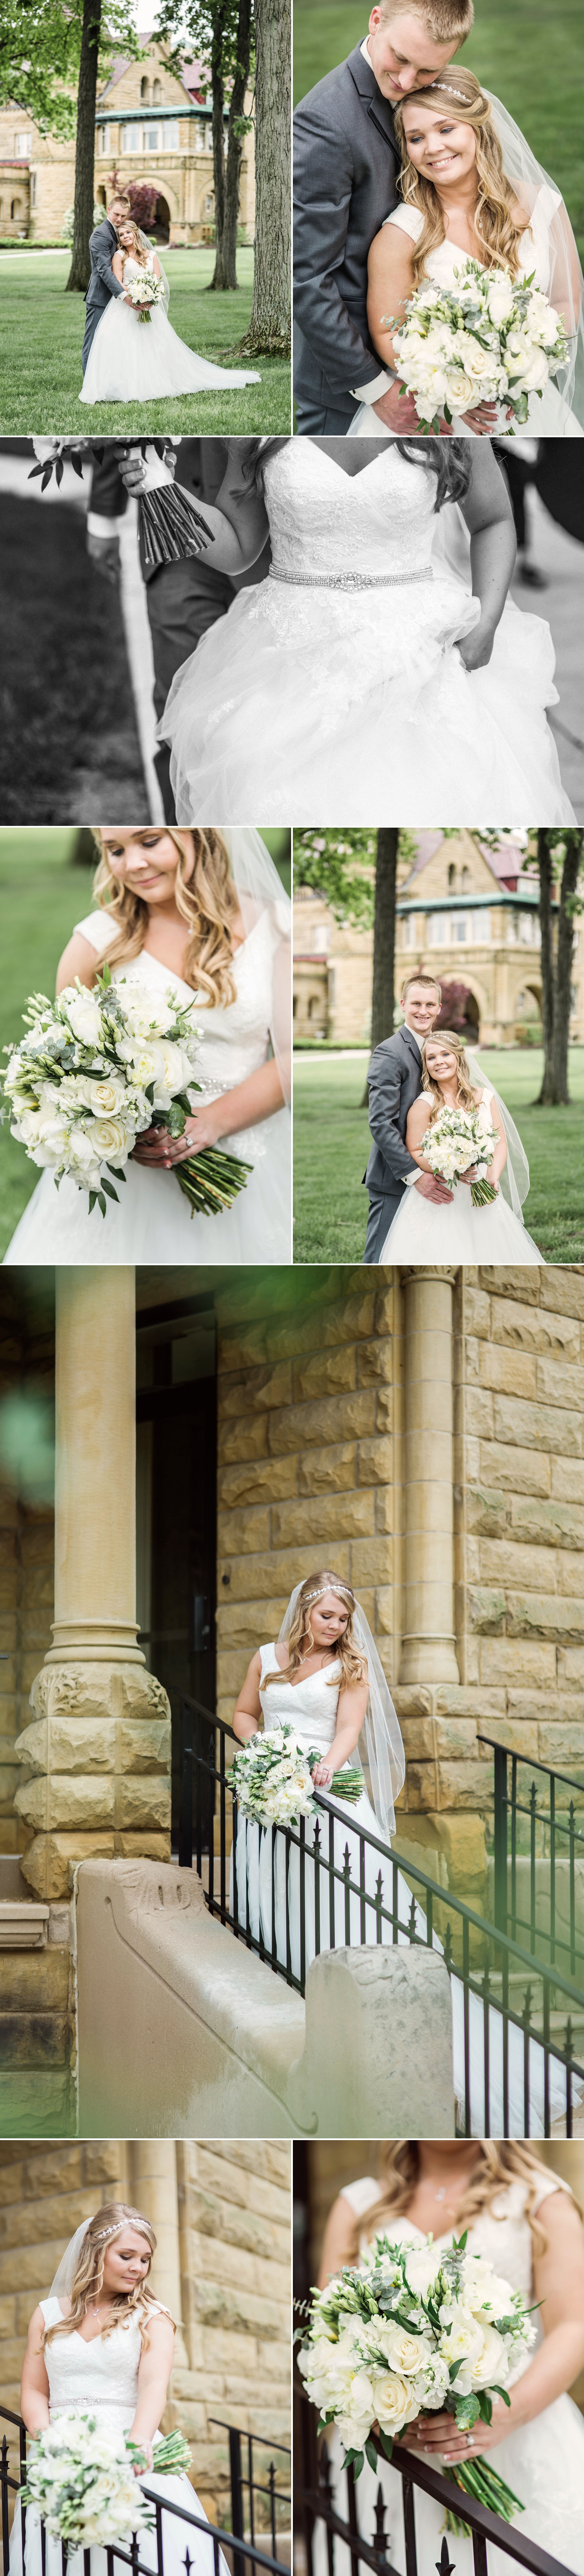 bride - flowers - bouquet - fort wayne - indiana